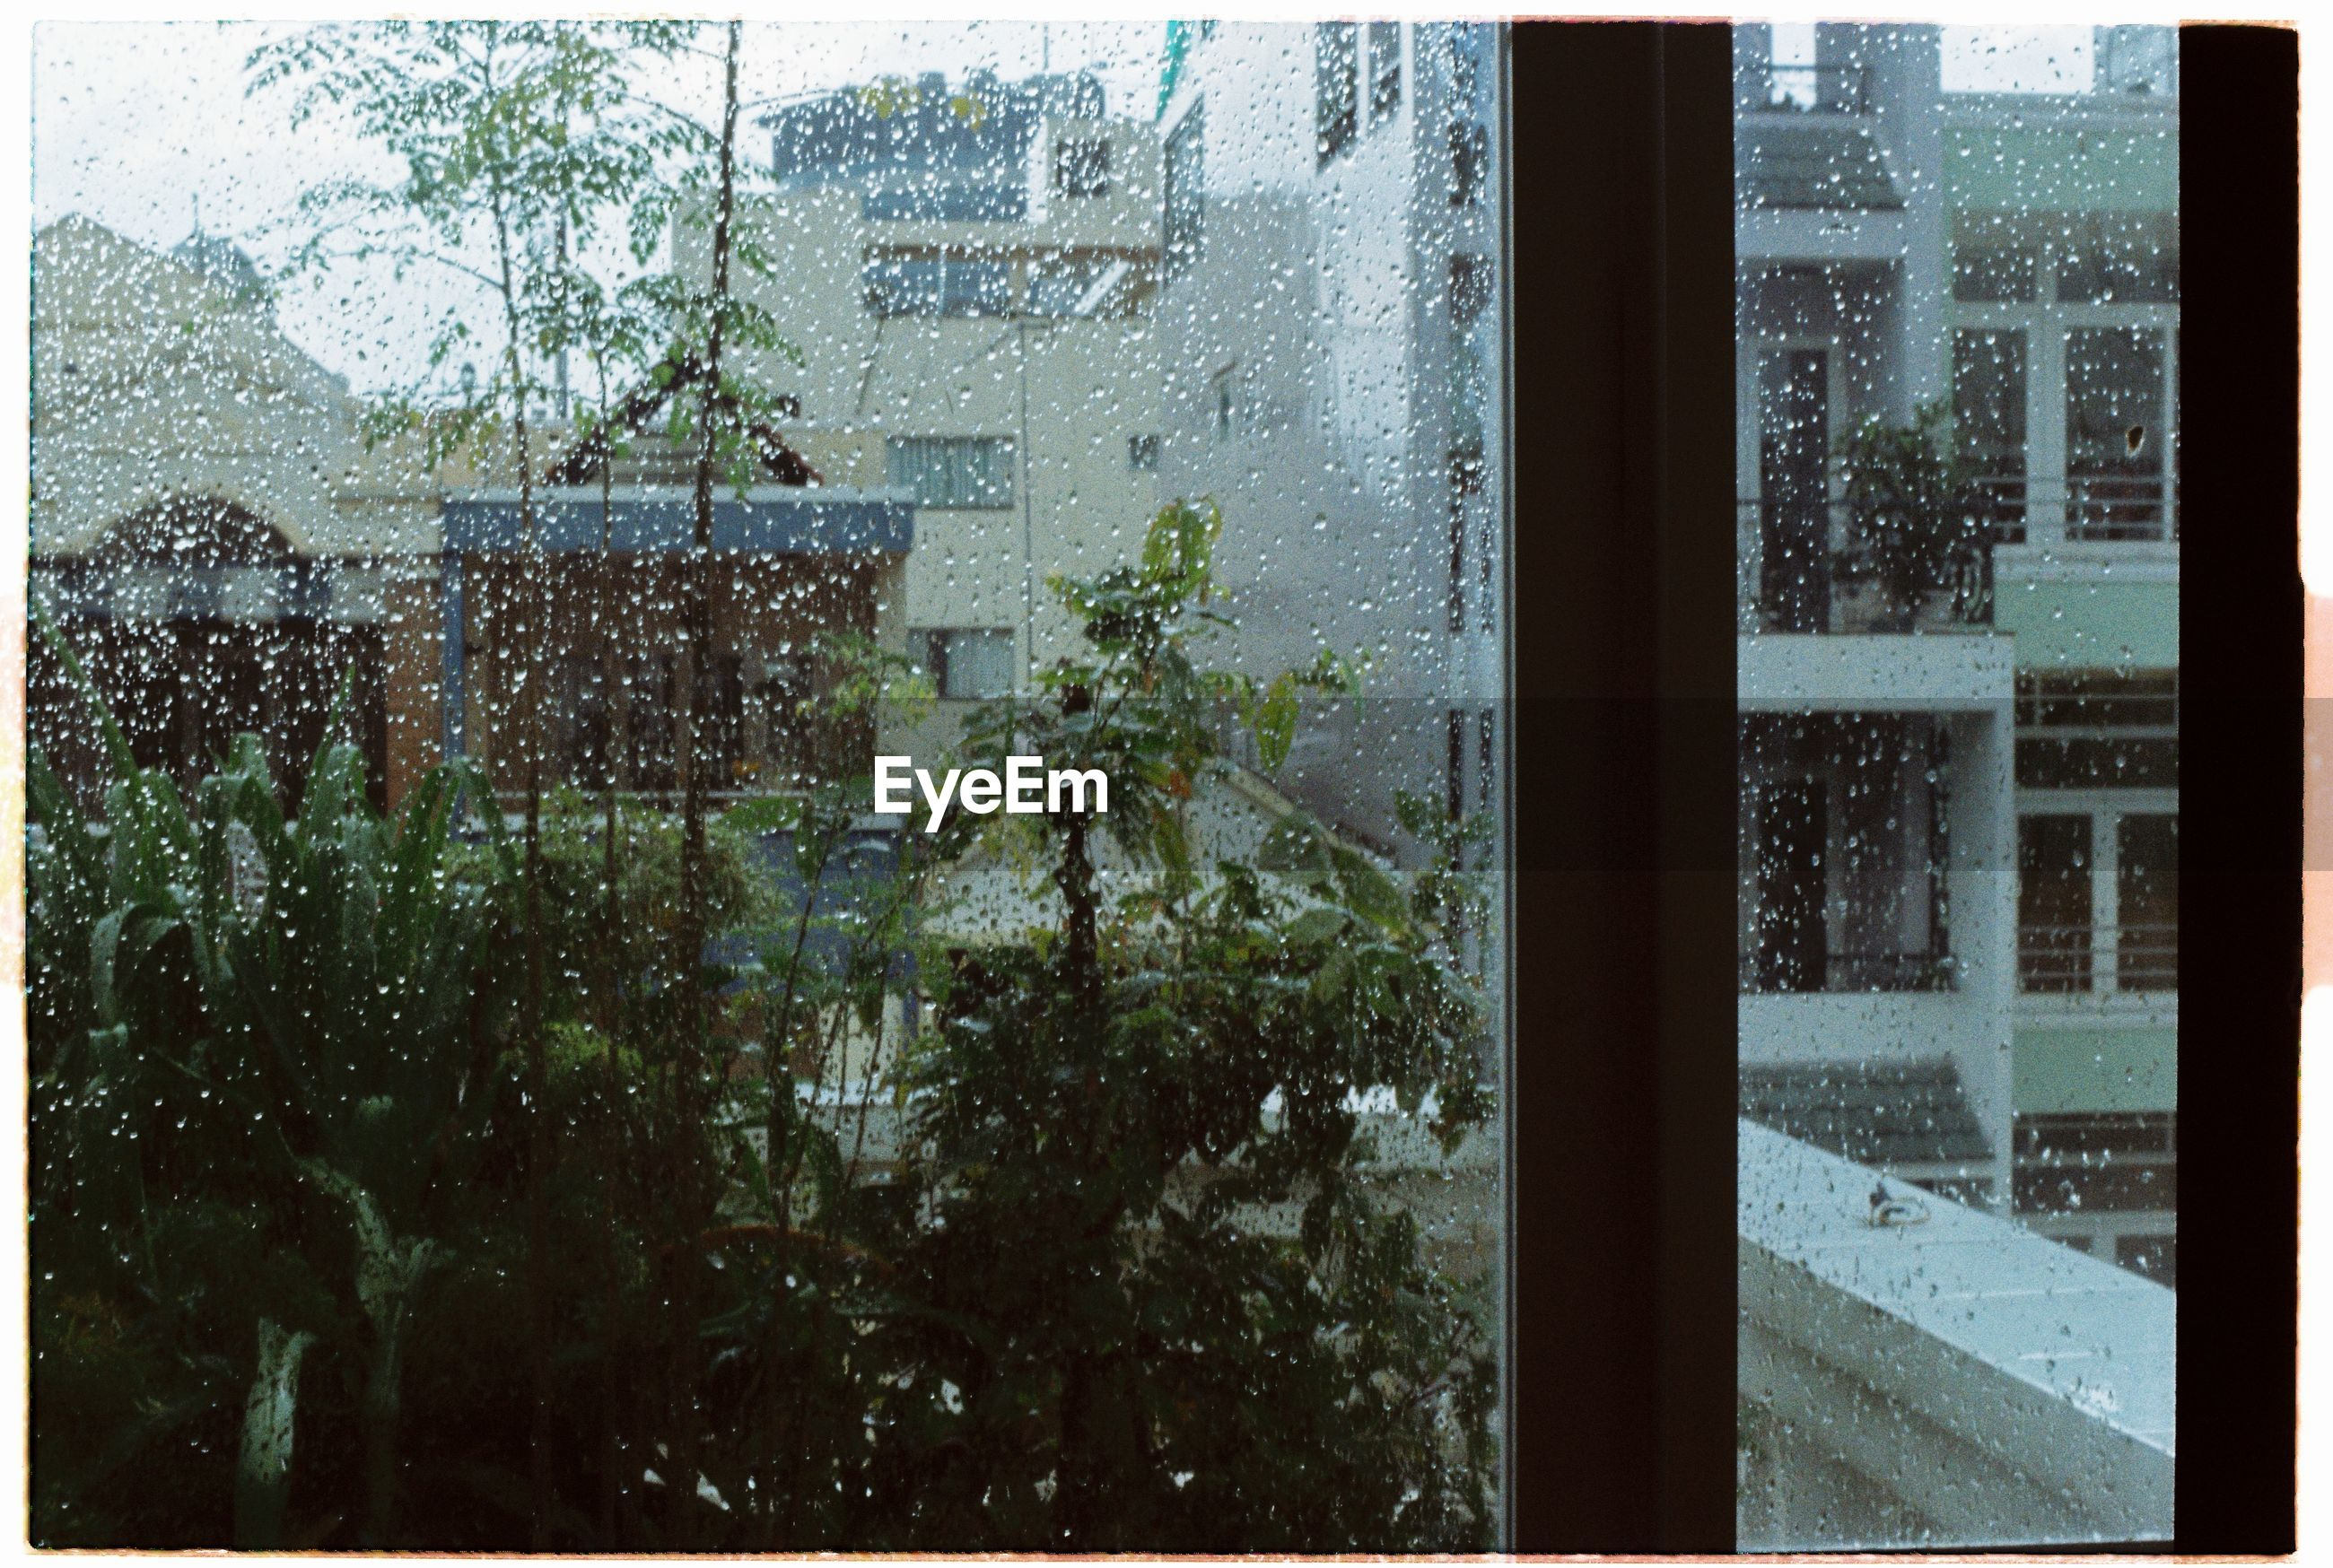 window, glass - material, transparent, wet, rain, looking through window, weather, rainy season, day, indoors, drop, raindrop, water, glass, tree, backgrounds, full frame, sky, no people, close-up, nature, window washer, frosted glass, architecture